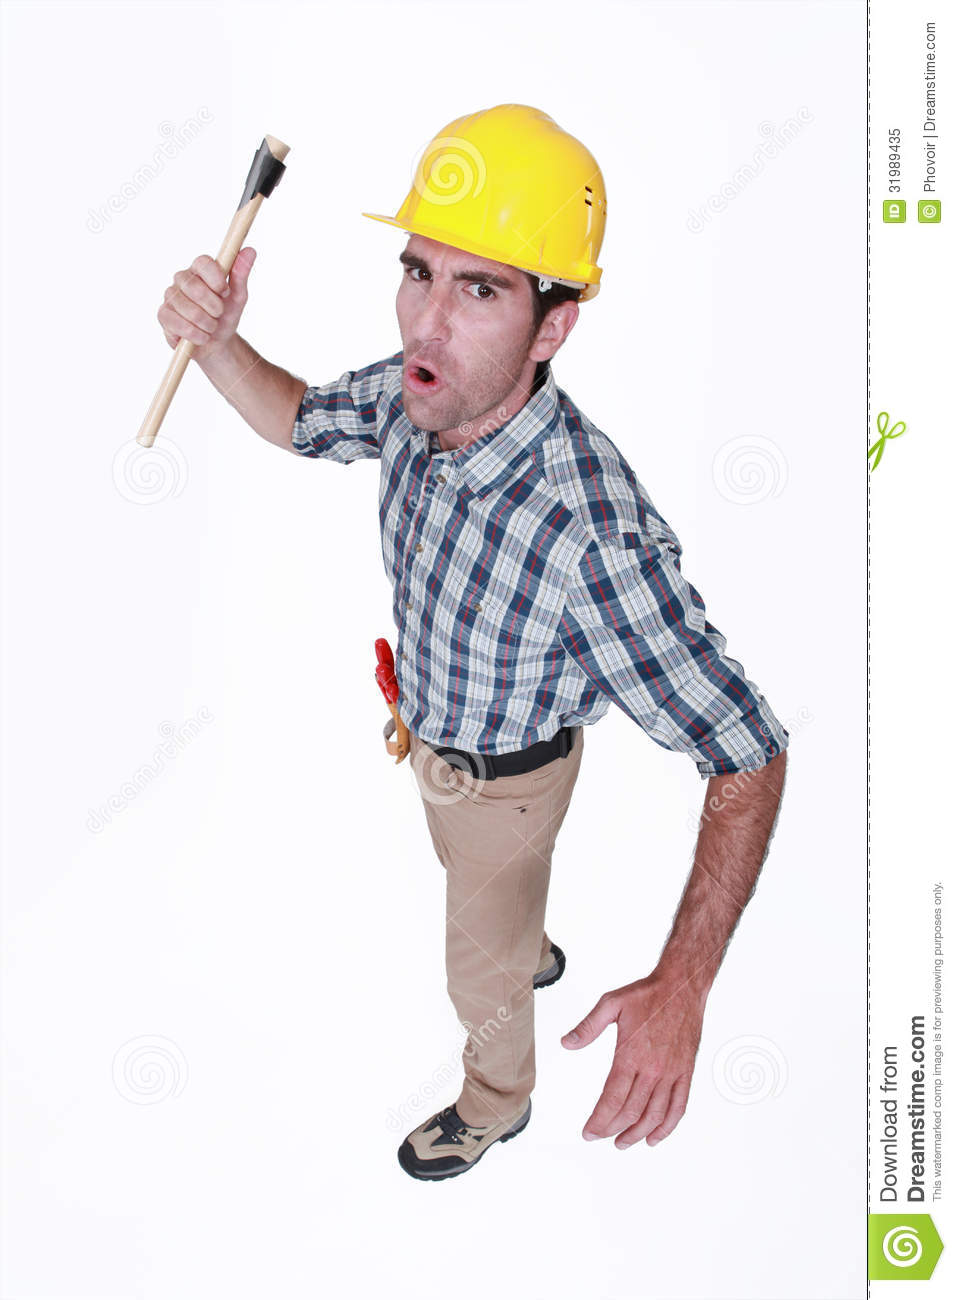 Angry Construction Worker Royalty Free Stock Photo - Image ...